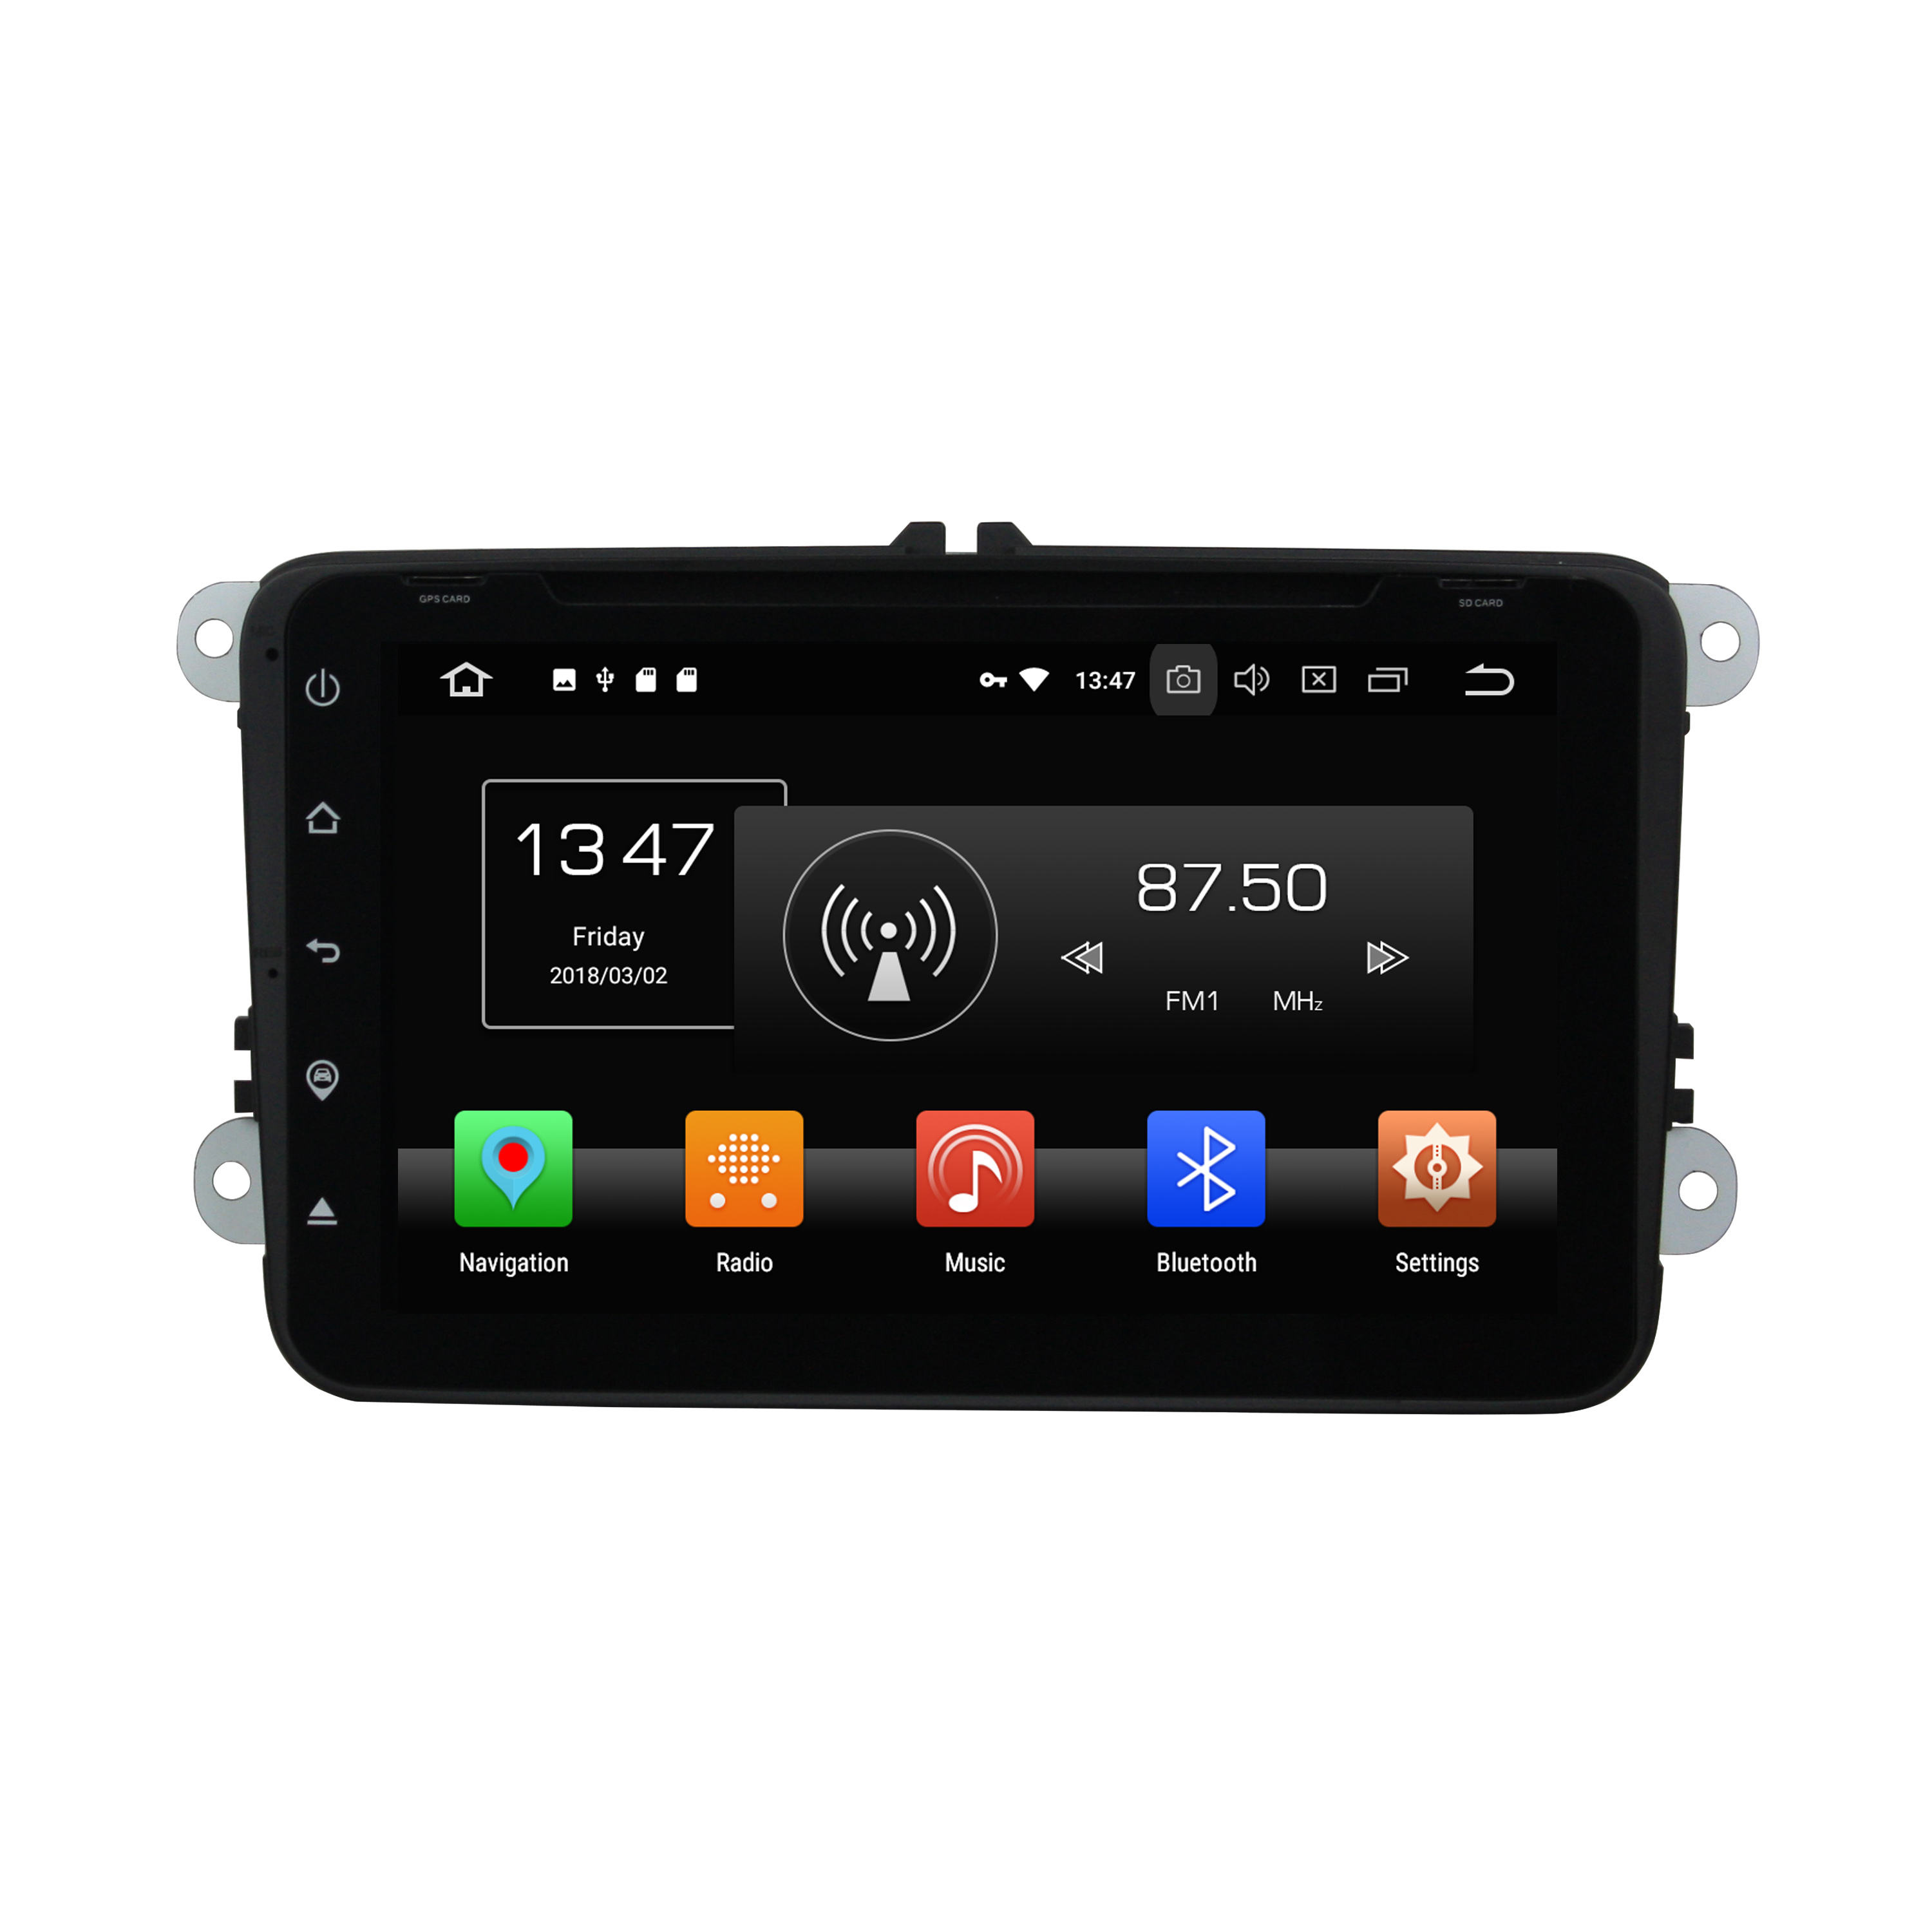 KD-8000 9 zoll full touch android 8.0 8 core auto multimedia-player unterstützung gps navigation dvr auto audio für <span class=keywords><strong>VW</strong></span> universal modell